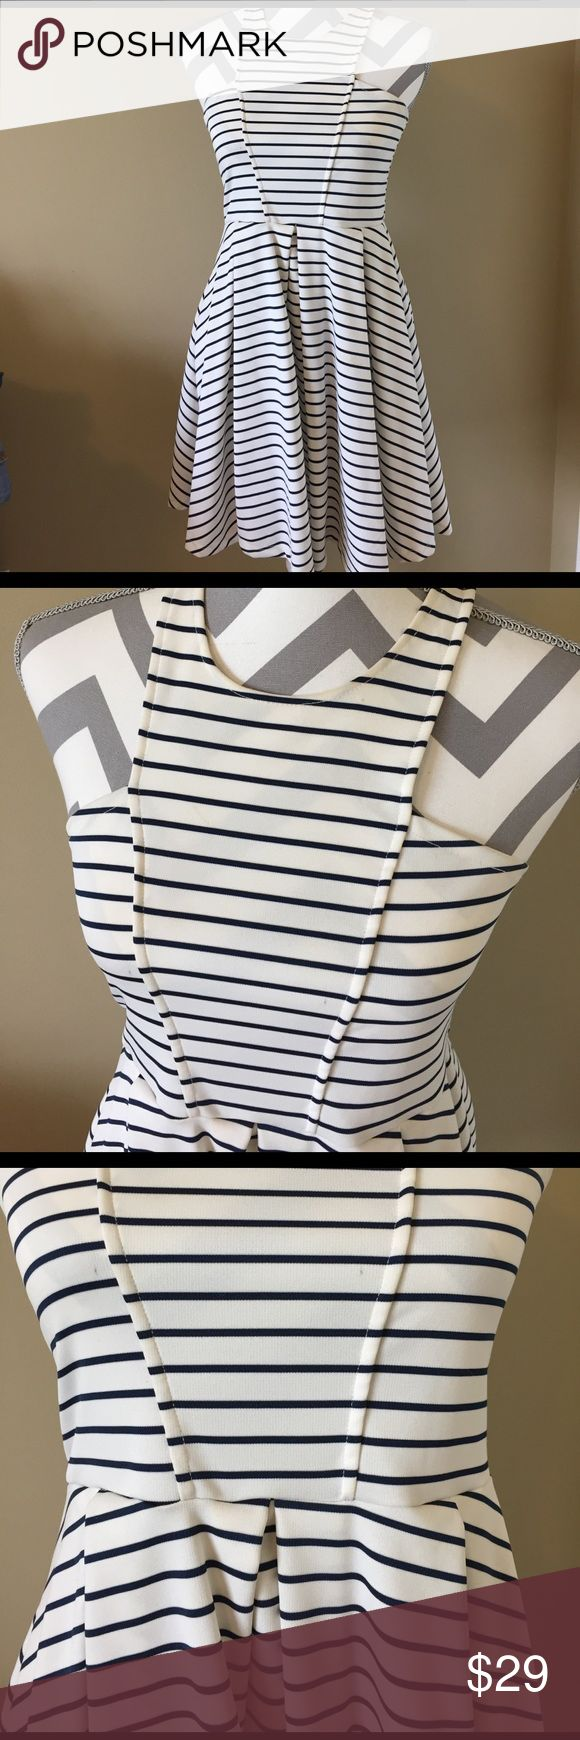 [Altar'd State] striped pleat flare dress Navy stripes on cream. Thicker material. Racerback and detail bodice. Pleats and flare. Altar'd State Dresses